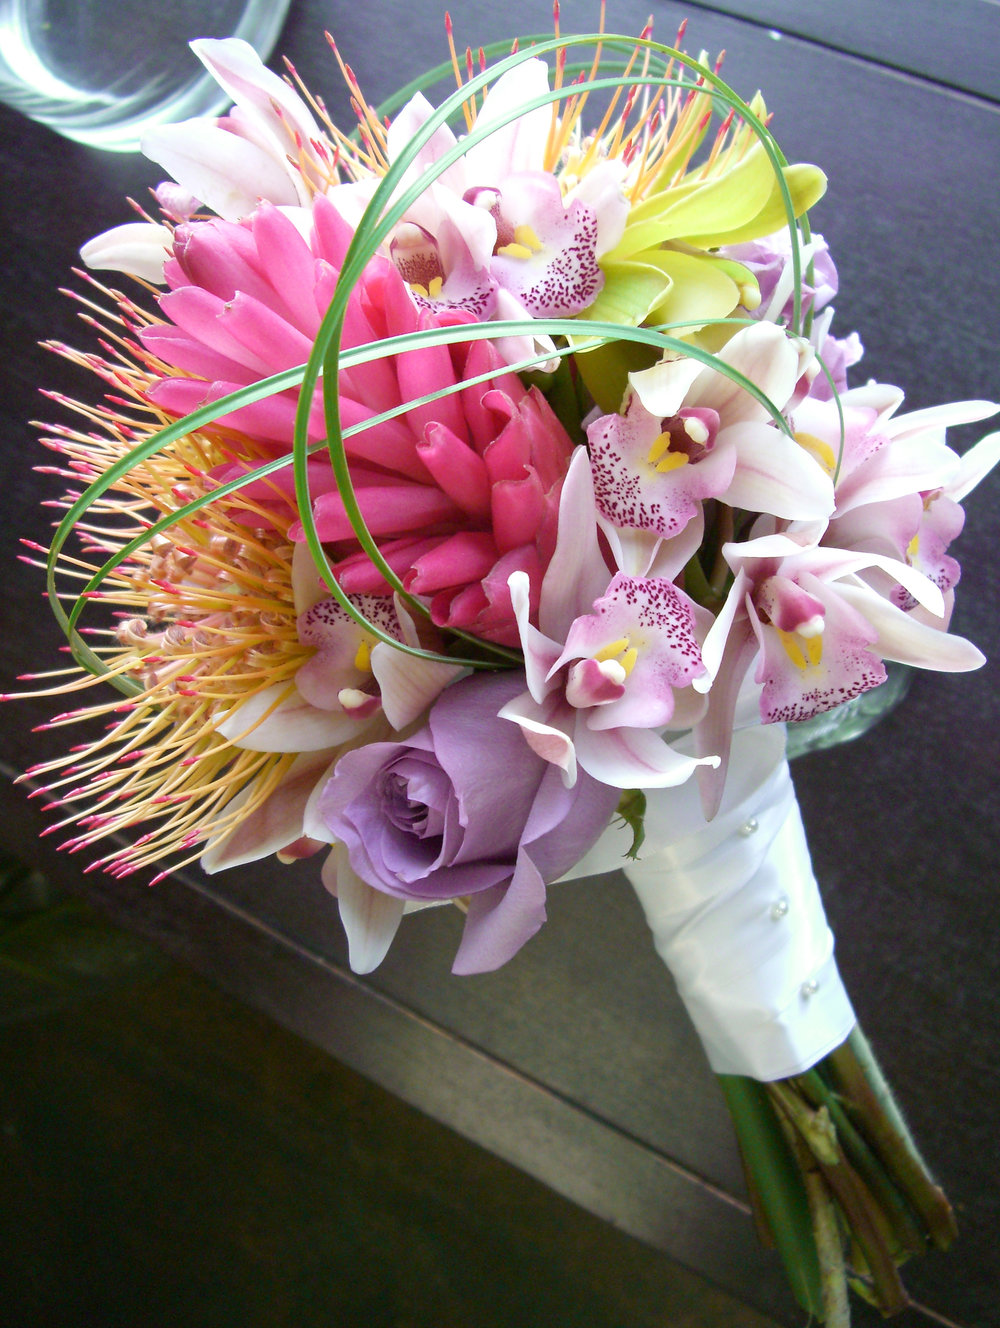 maui-tropical-wedding-bouquet.jpg